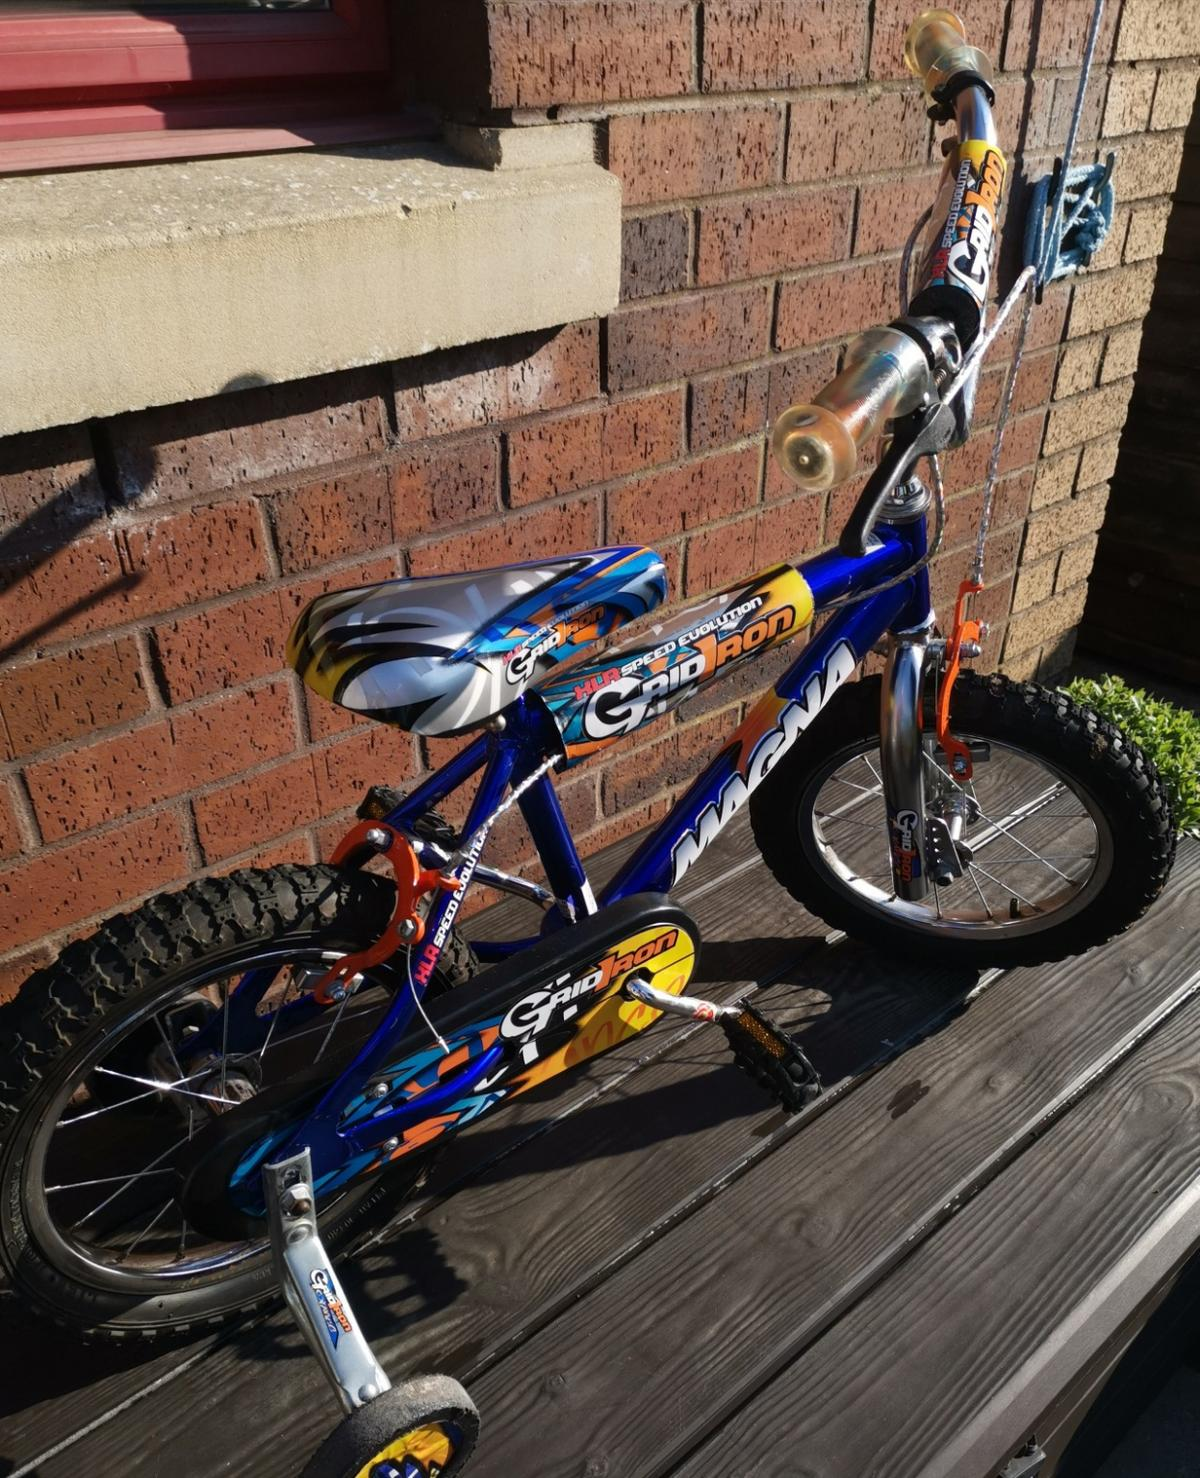 Child's 10.5 inch bike with stabilizers in very good condition ready to use, very clean, from pet and smoke free home. No posting.